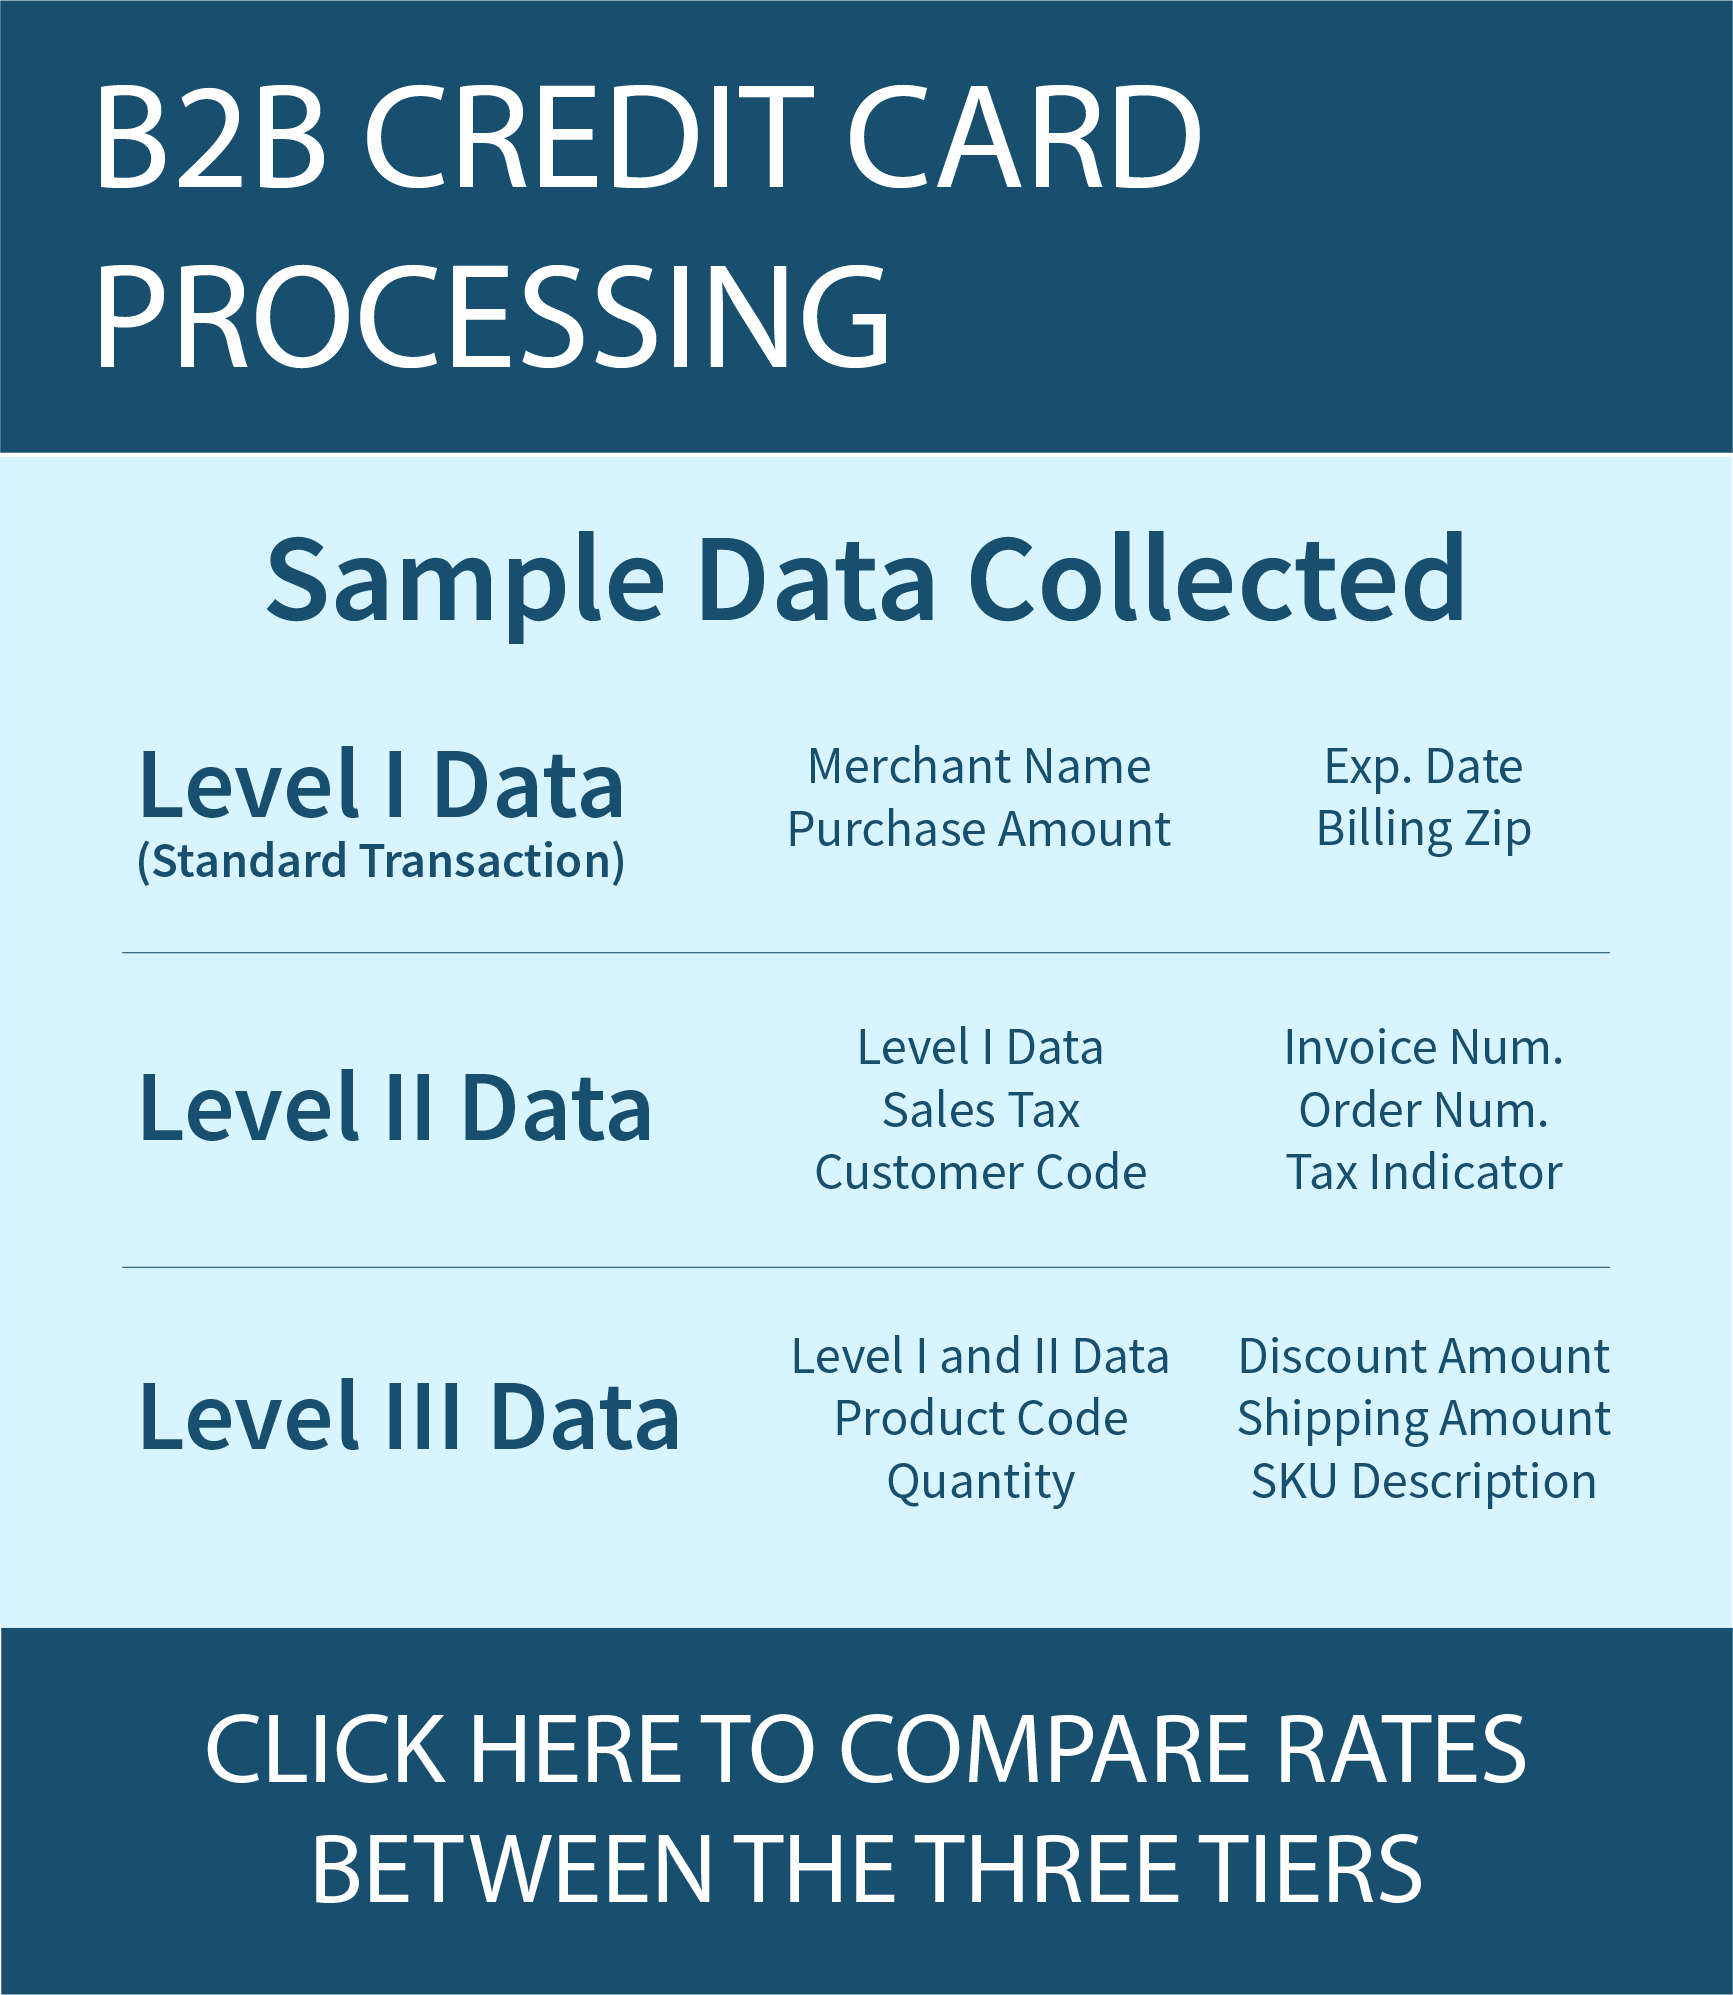 b2b-credit-cards-level-2-and-3